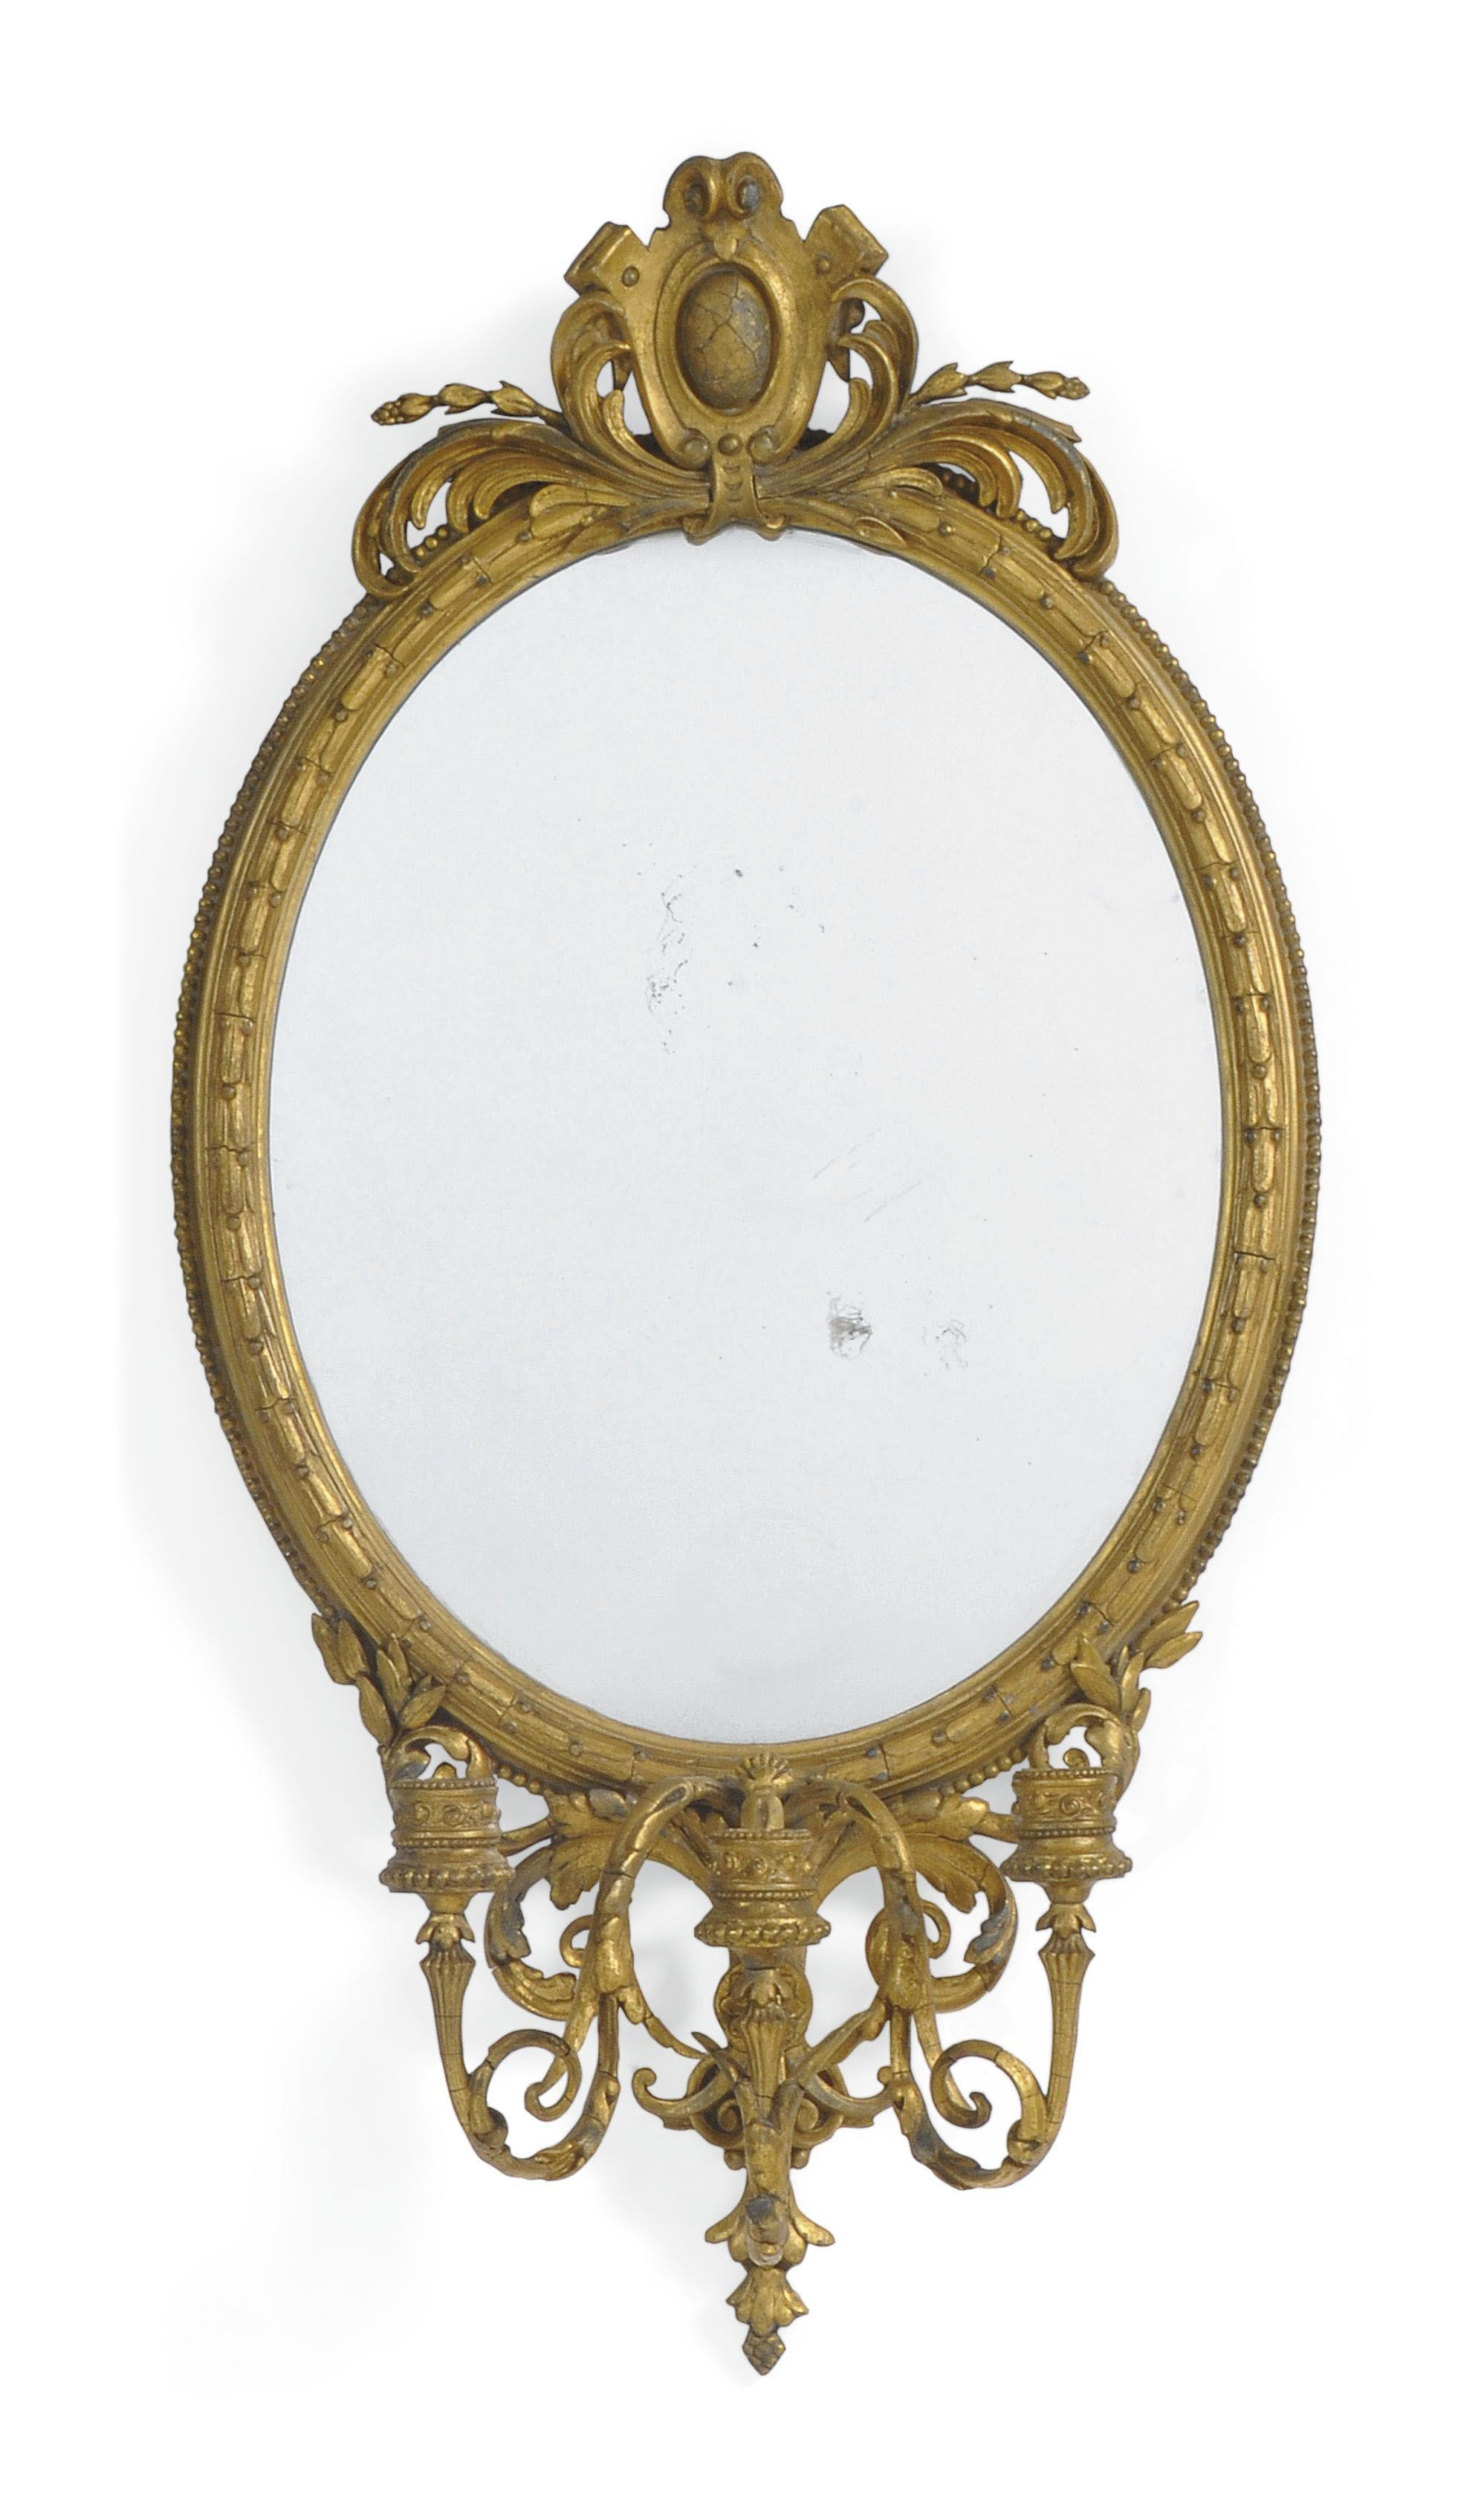 A PAIR OF VICTORIAN GILTWOOD AND COMPOSITION GIRANDOLE MIRRORS